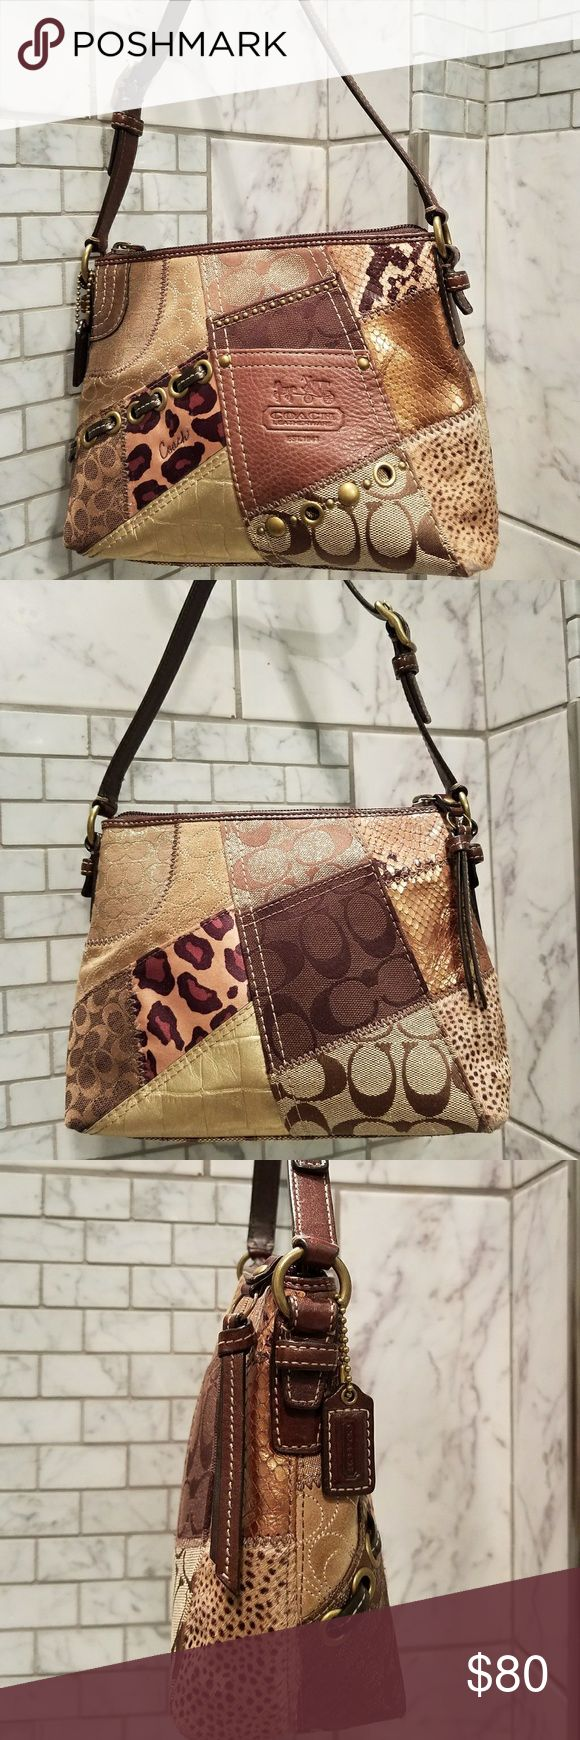 """Mini Genuine EU Coach Bag Multi-texture of leather, metallic leather, animal print faux fur, rosy tan satin lining (not as pink as pictured) with small pocket and 9"""" strap. Minor wear of fur on 2 bottom corners as shown. Dimensions: 9""""W x 7""""H x 3""""D. Coach Bags Mini Bags"""